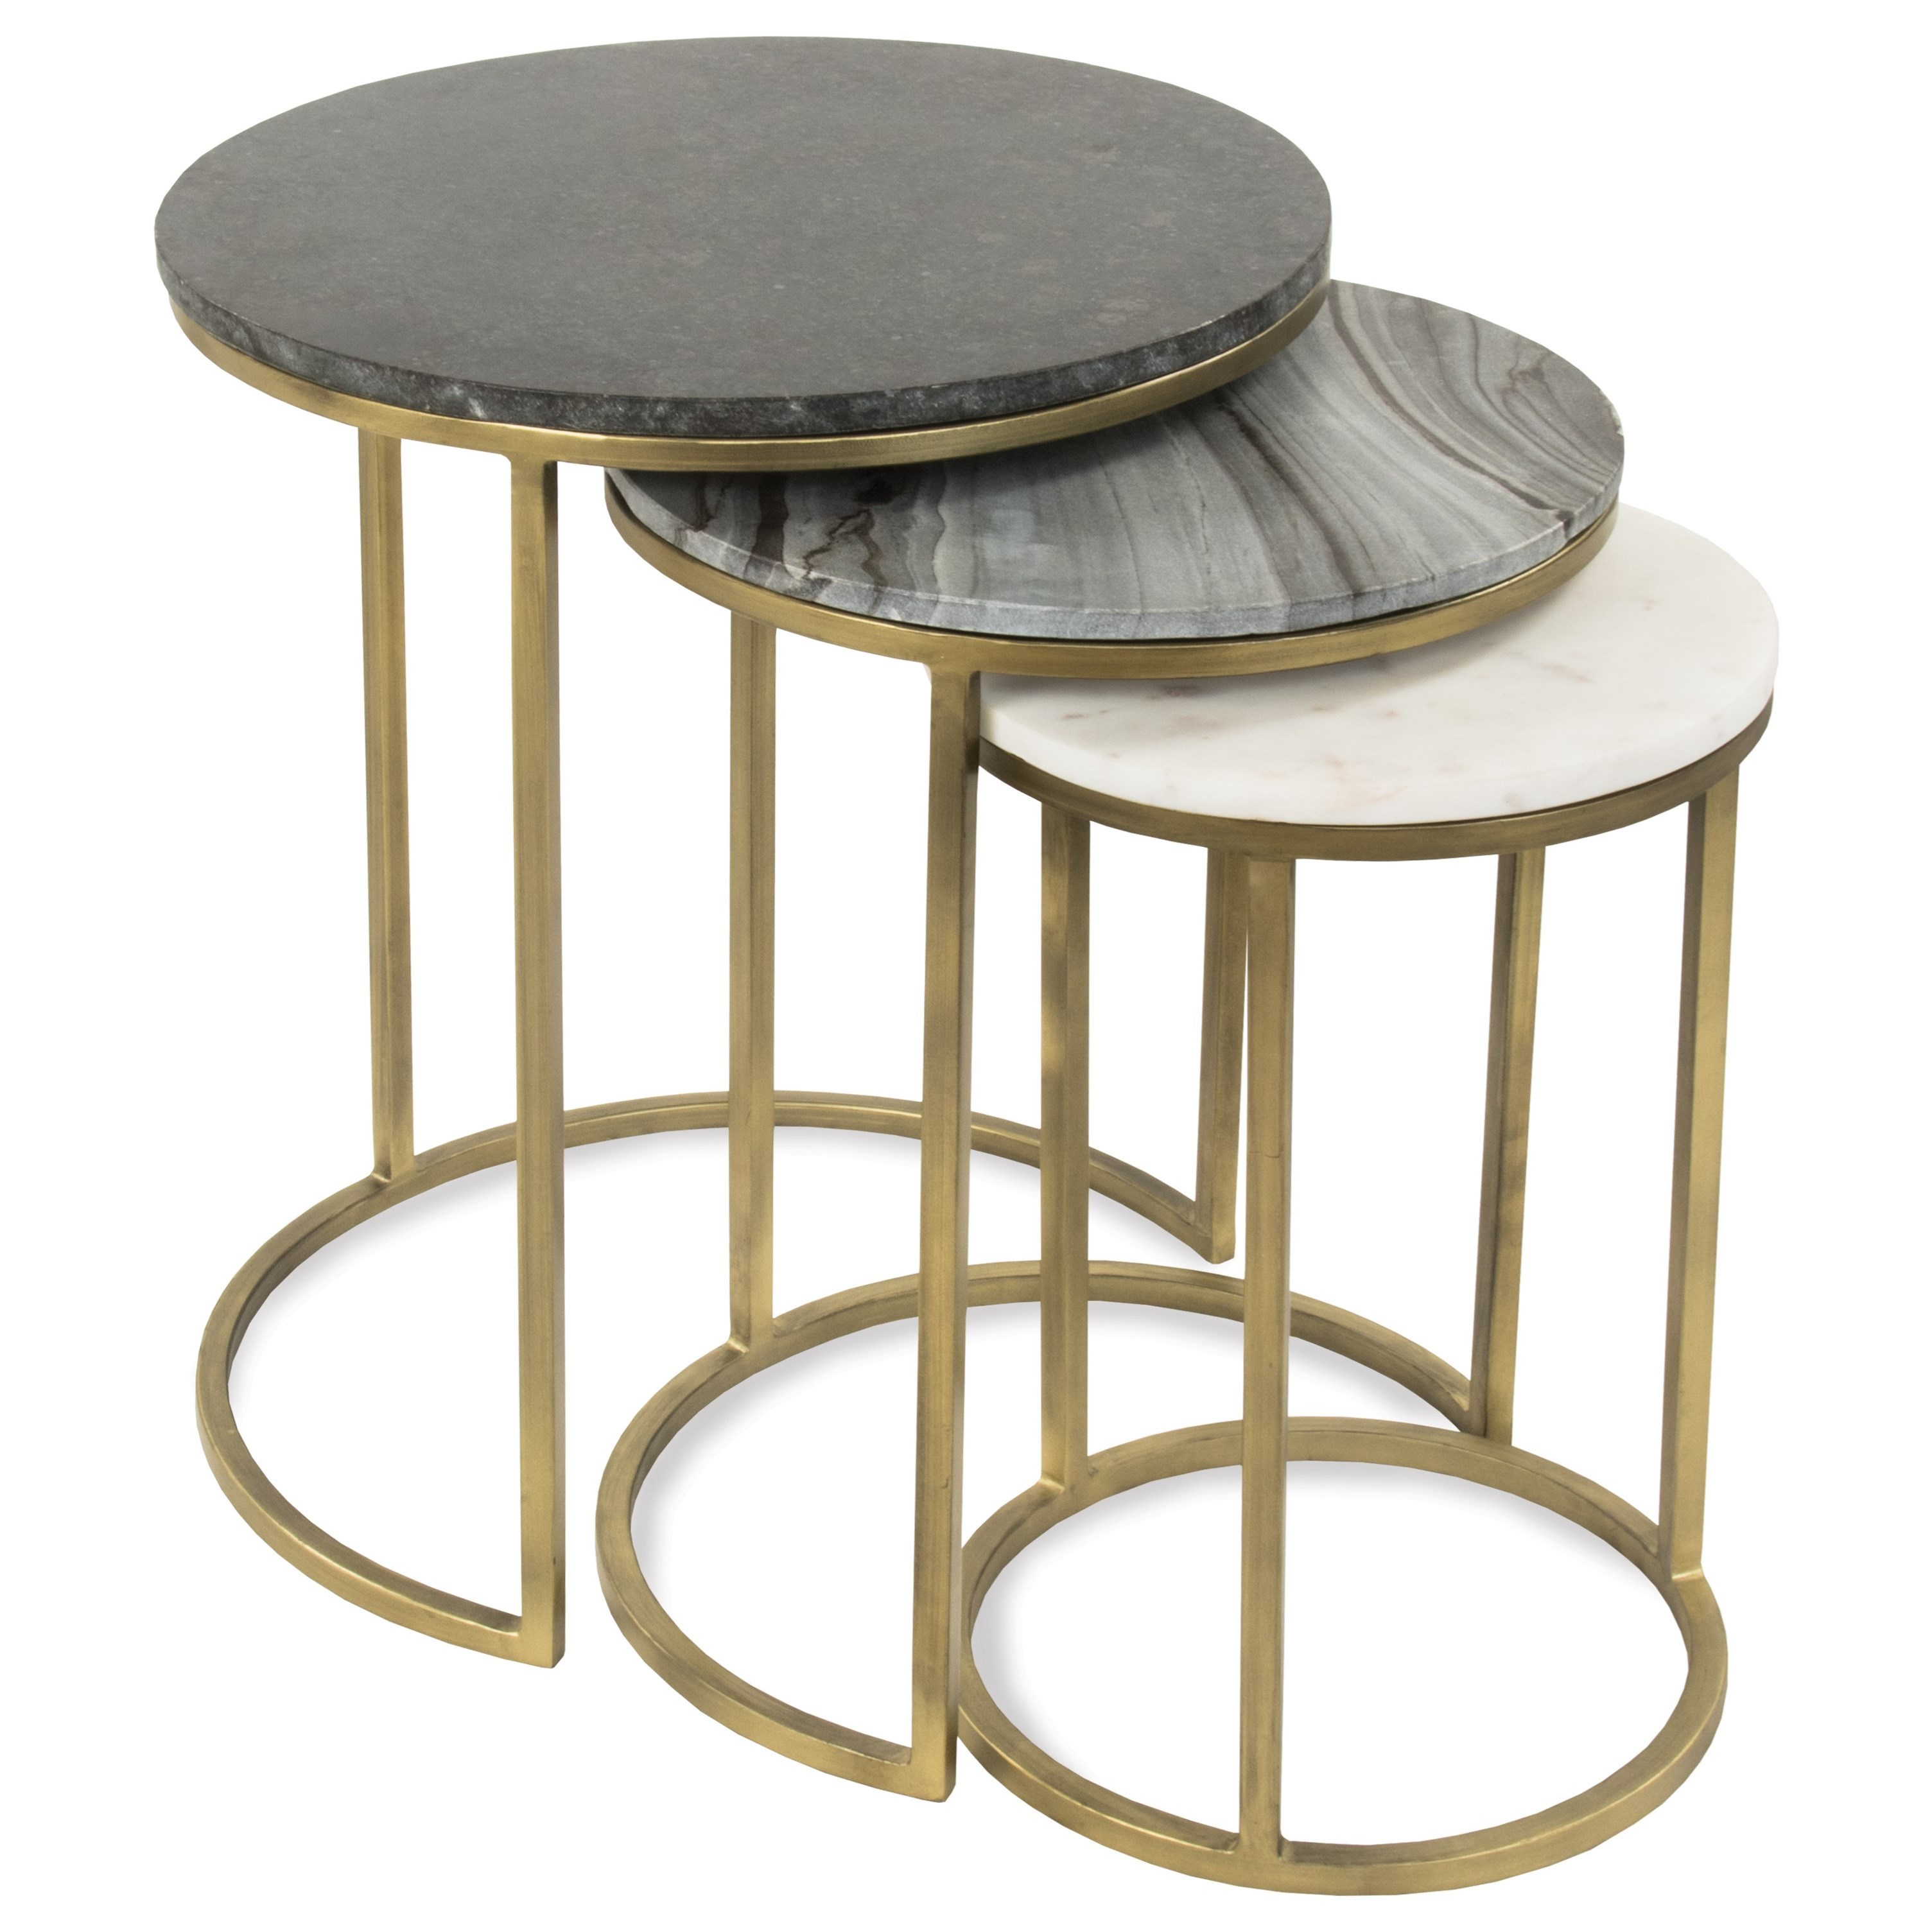 nesting side tables accent small nest metal lacquer table corner square outdoor full size rustic furniture build cream linen tablecloth black and white patio umbrella round